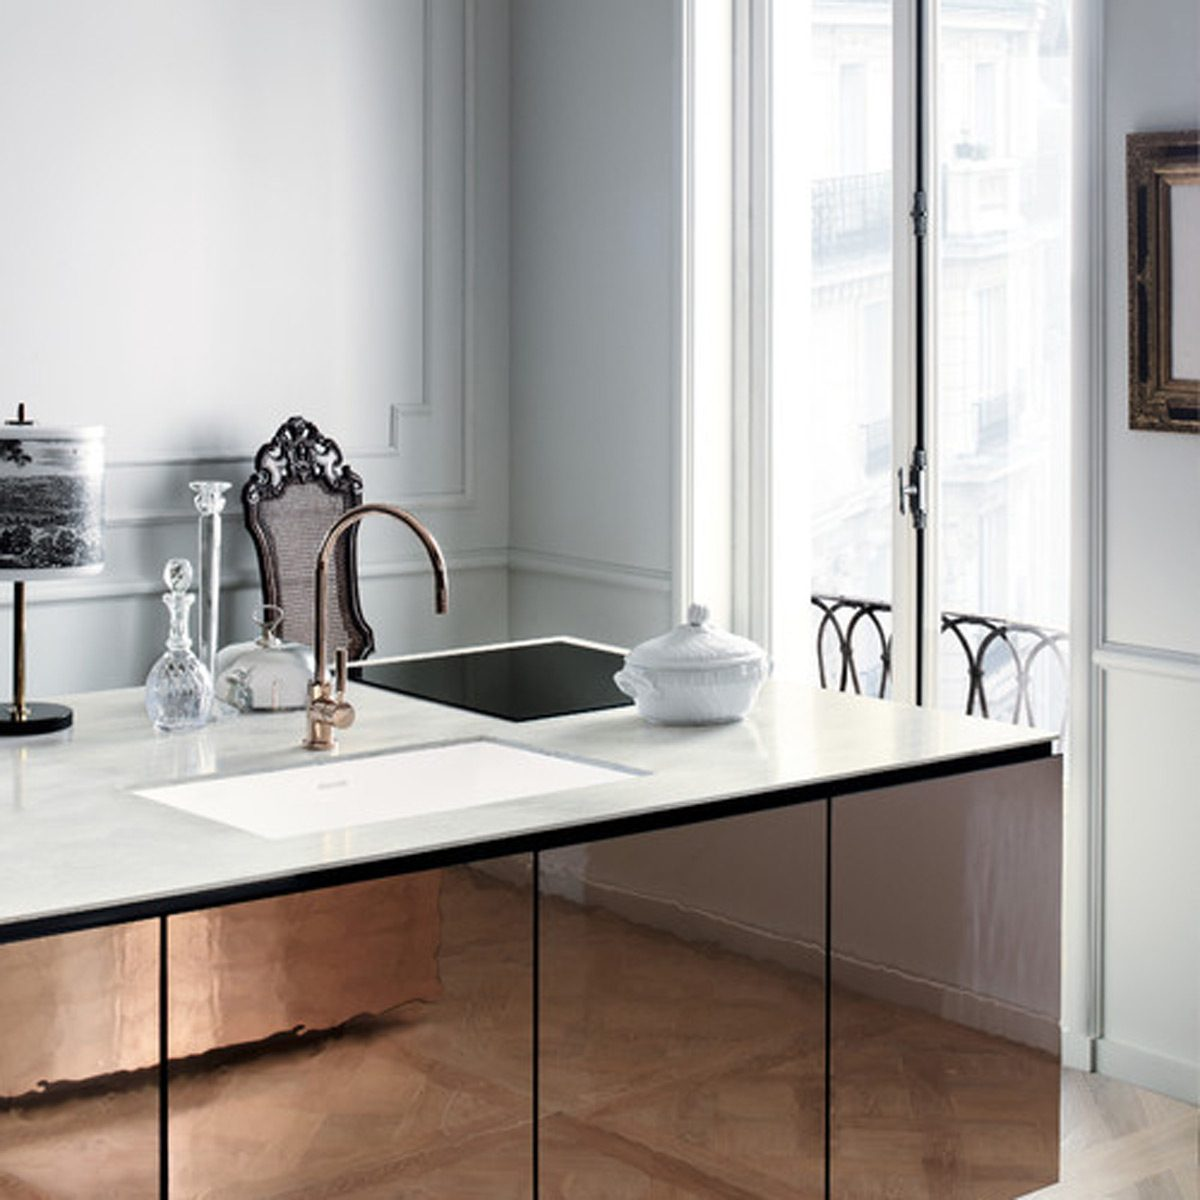 10 Kitchen Countertop Ideas People Are Doing Right Now Family